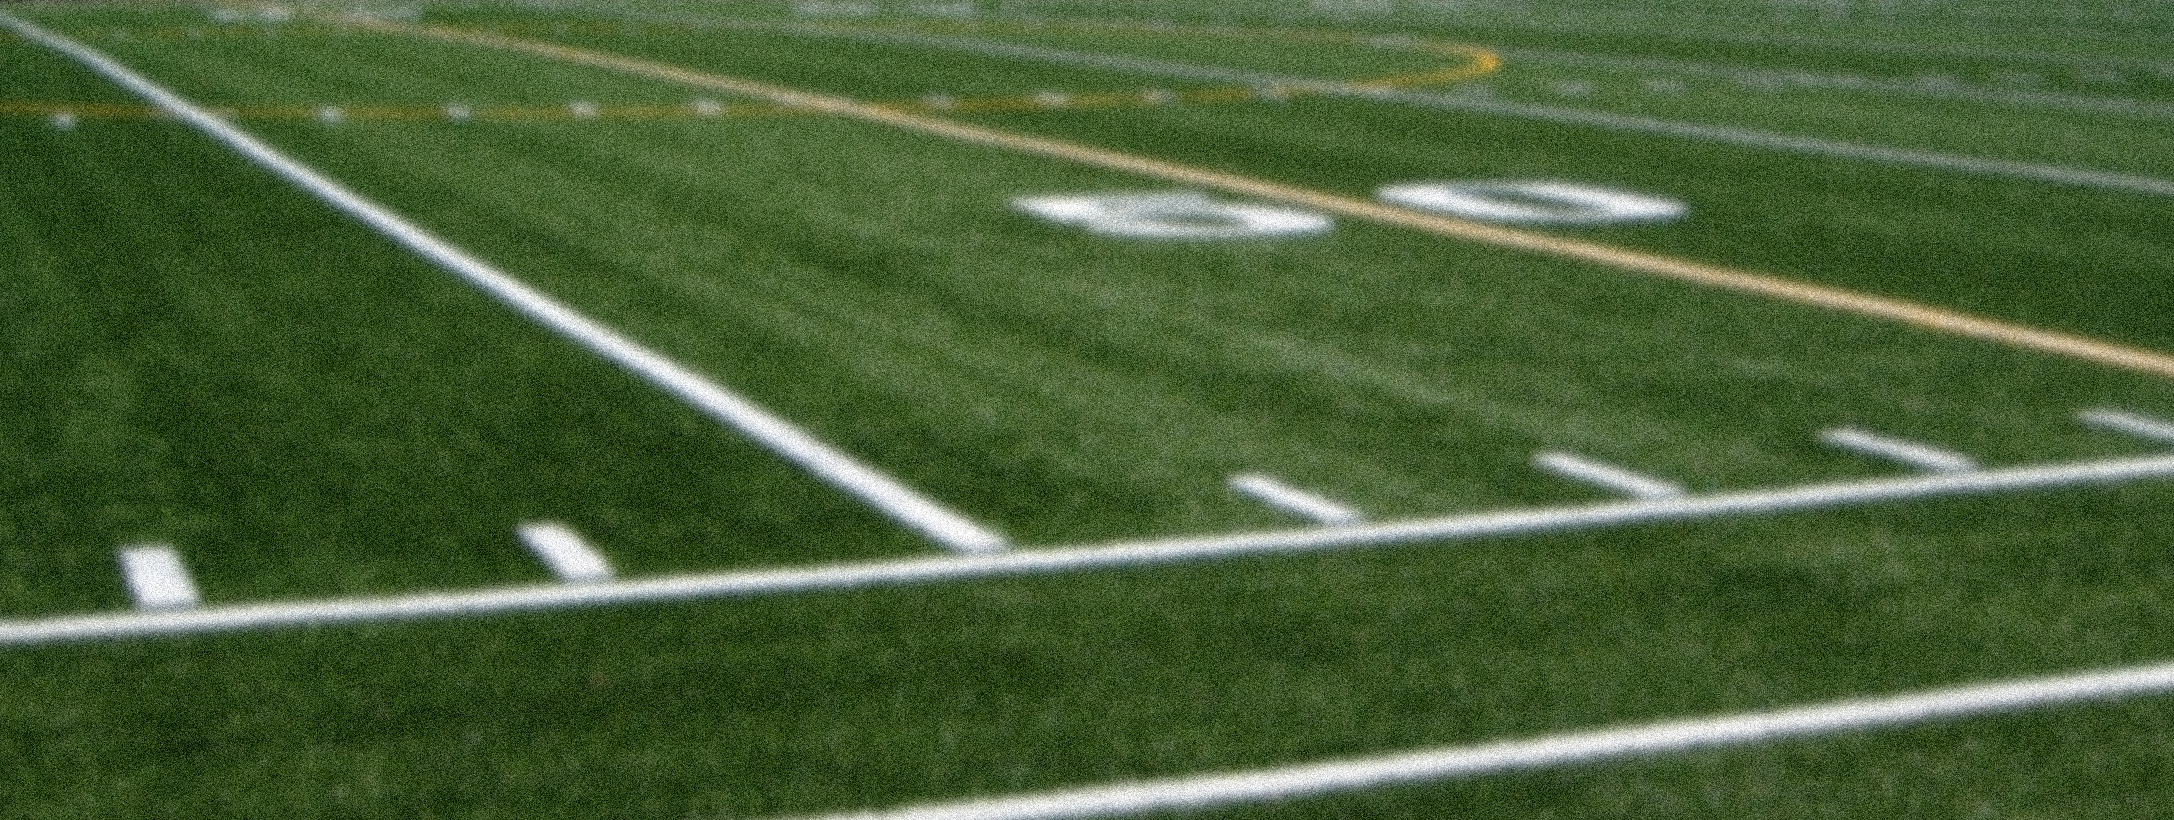 Photograph of an American football field